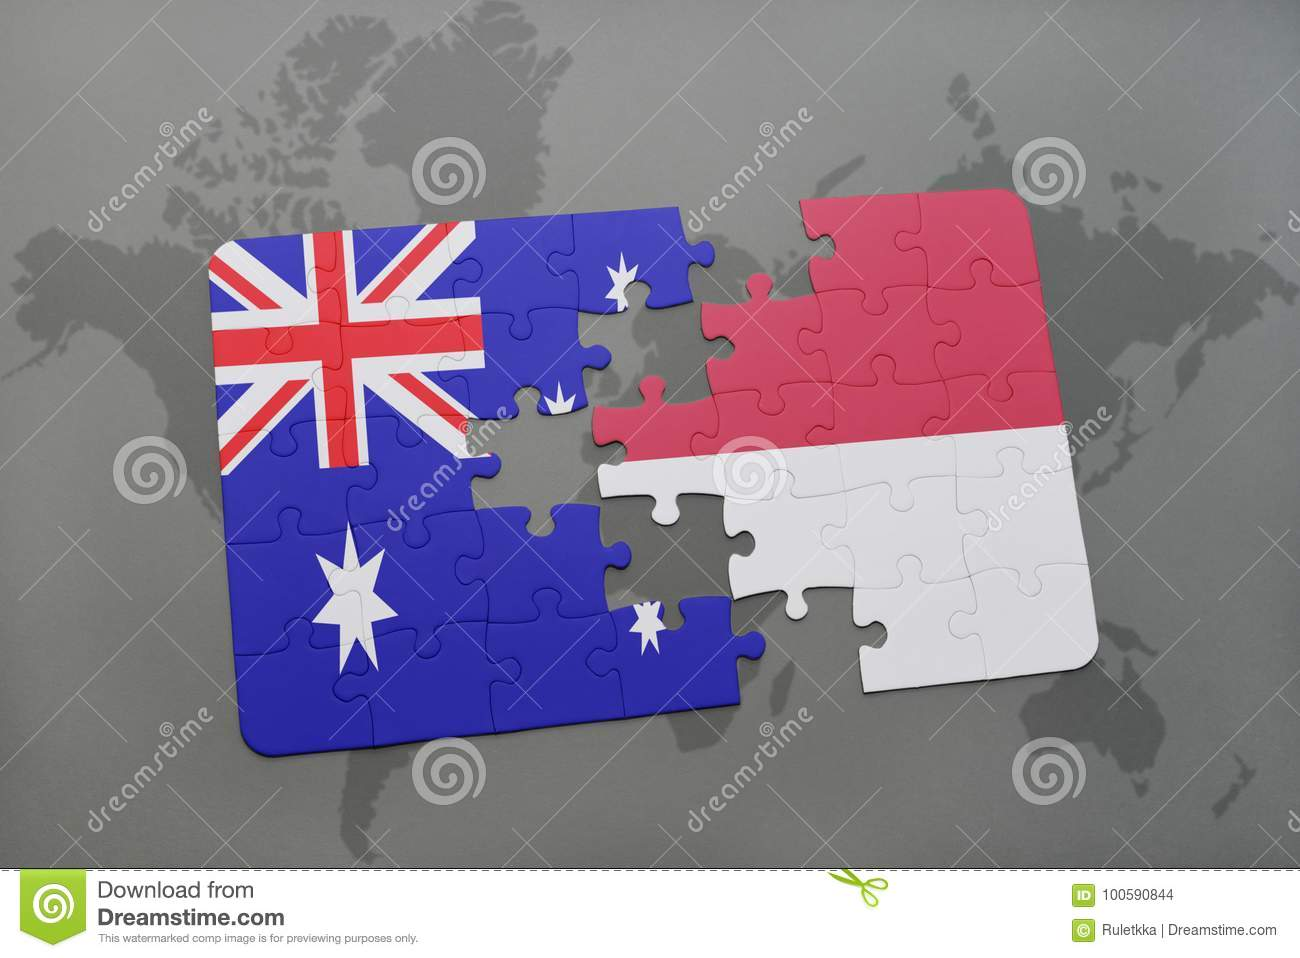 puzzle with the national flag of australia and indonesia on a world map background.